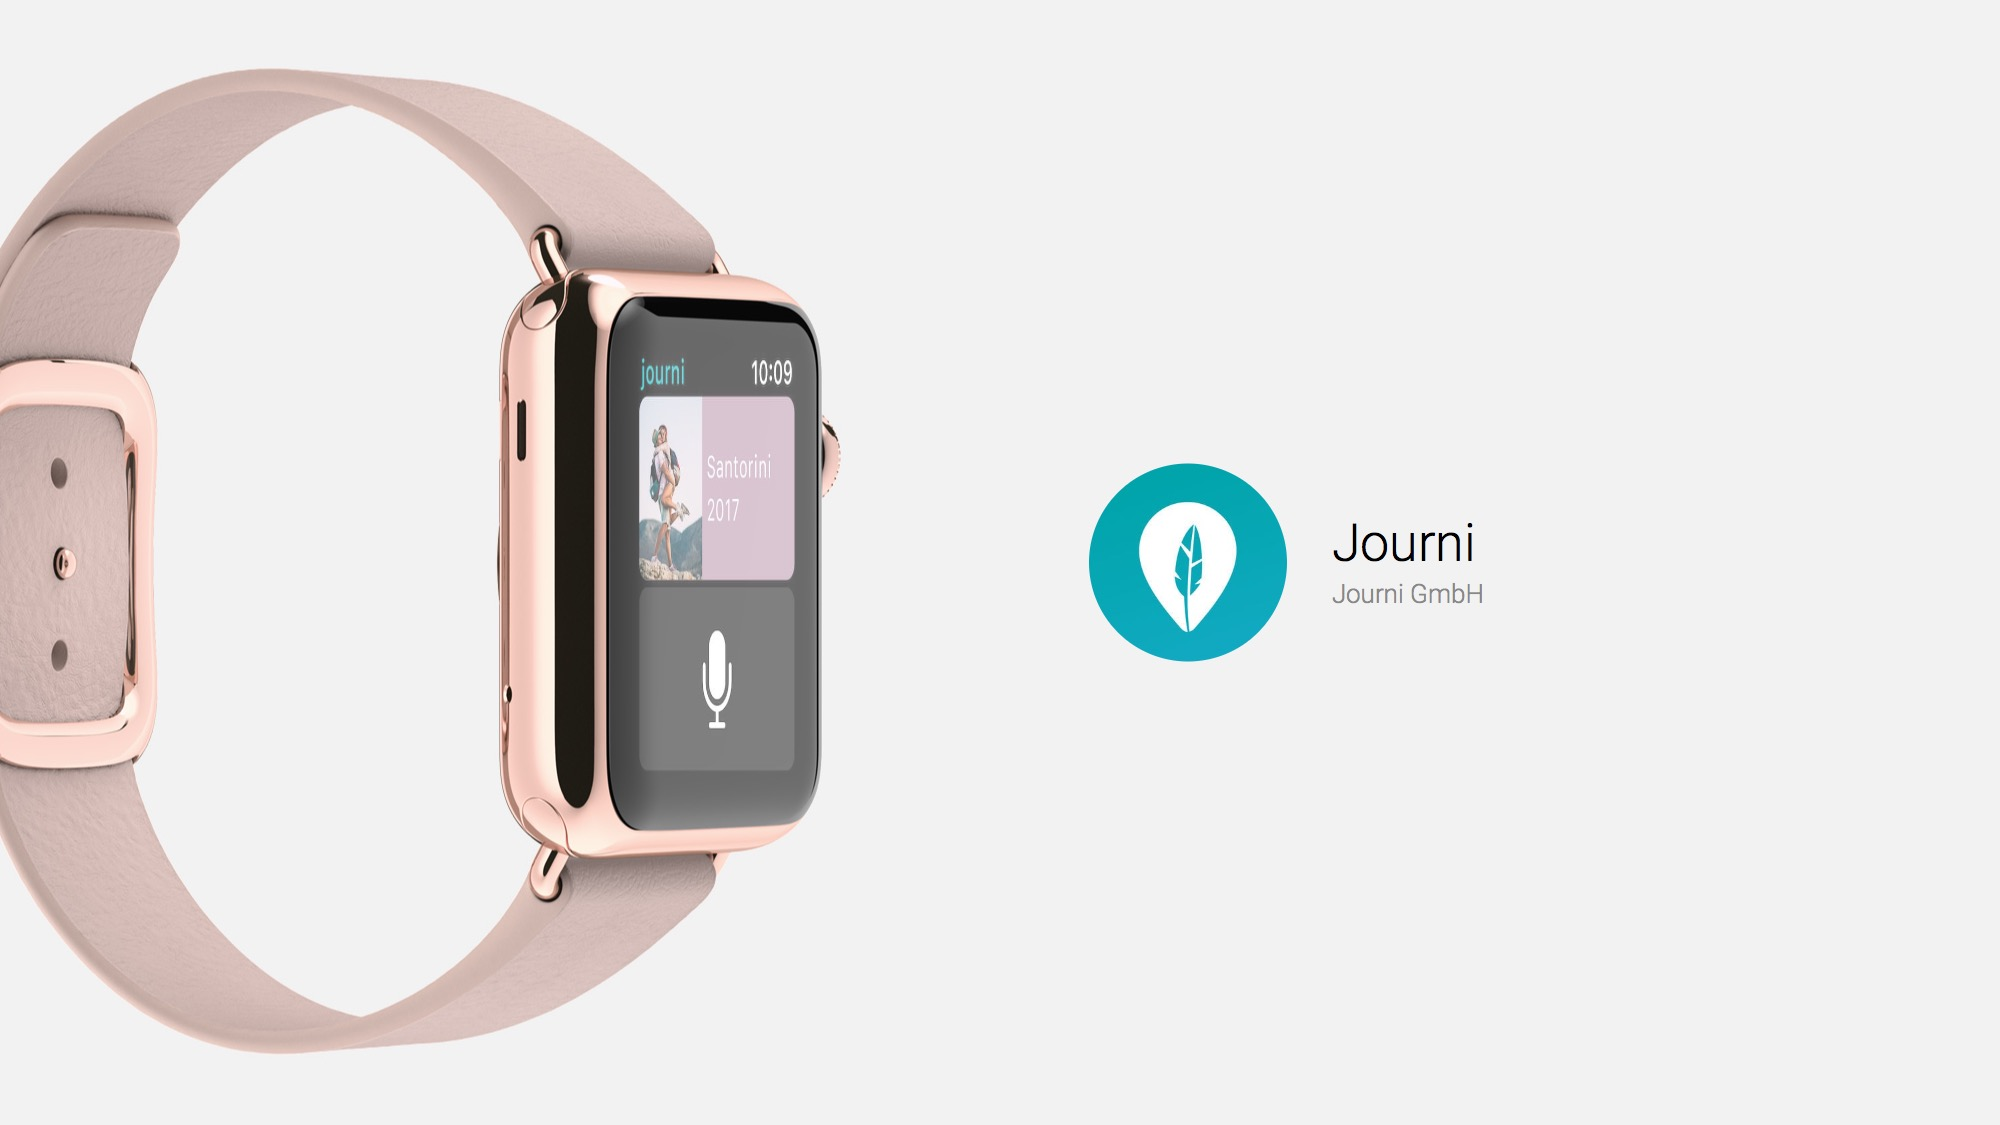 Travel and Save the Memories on Apple Watch with journi